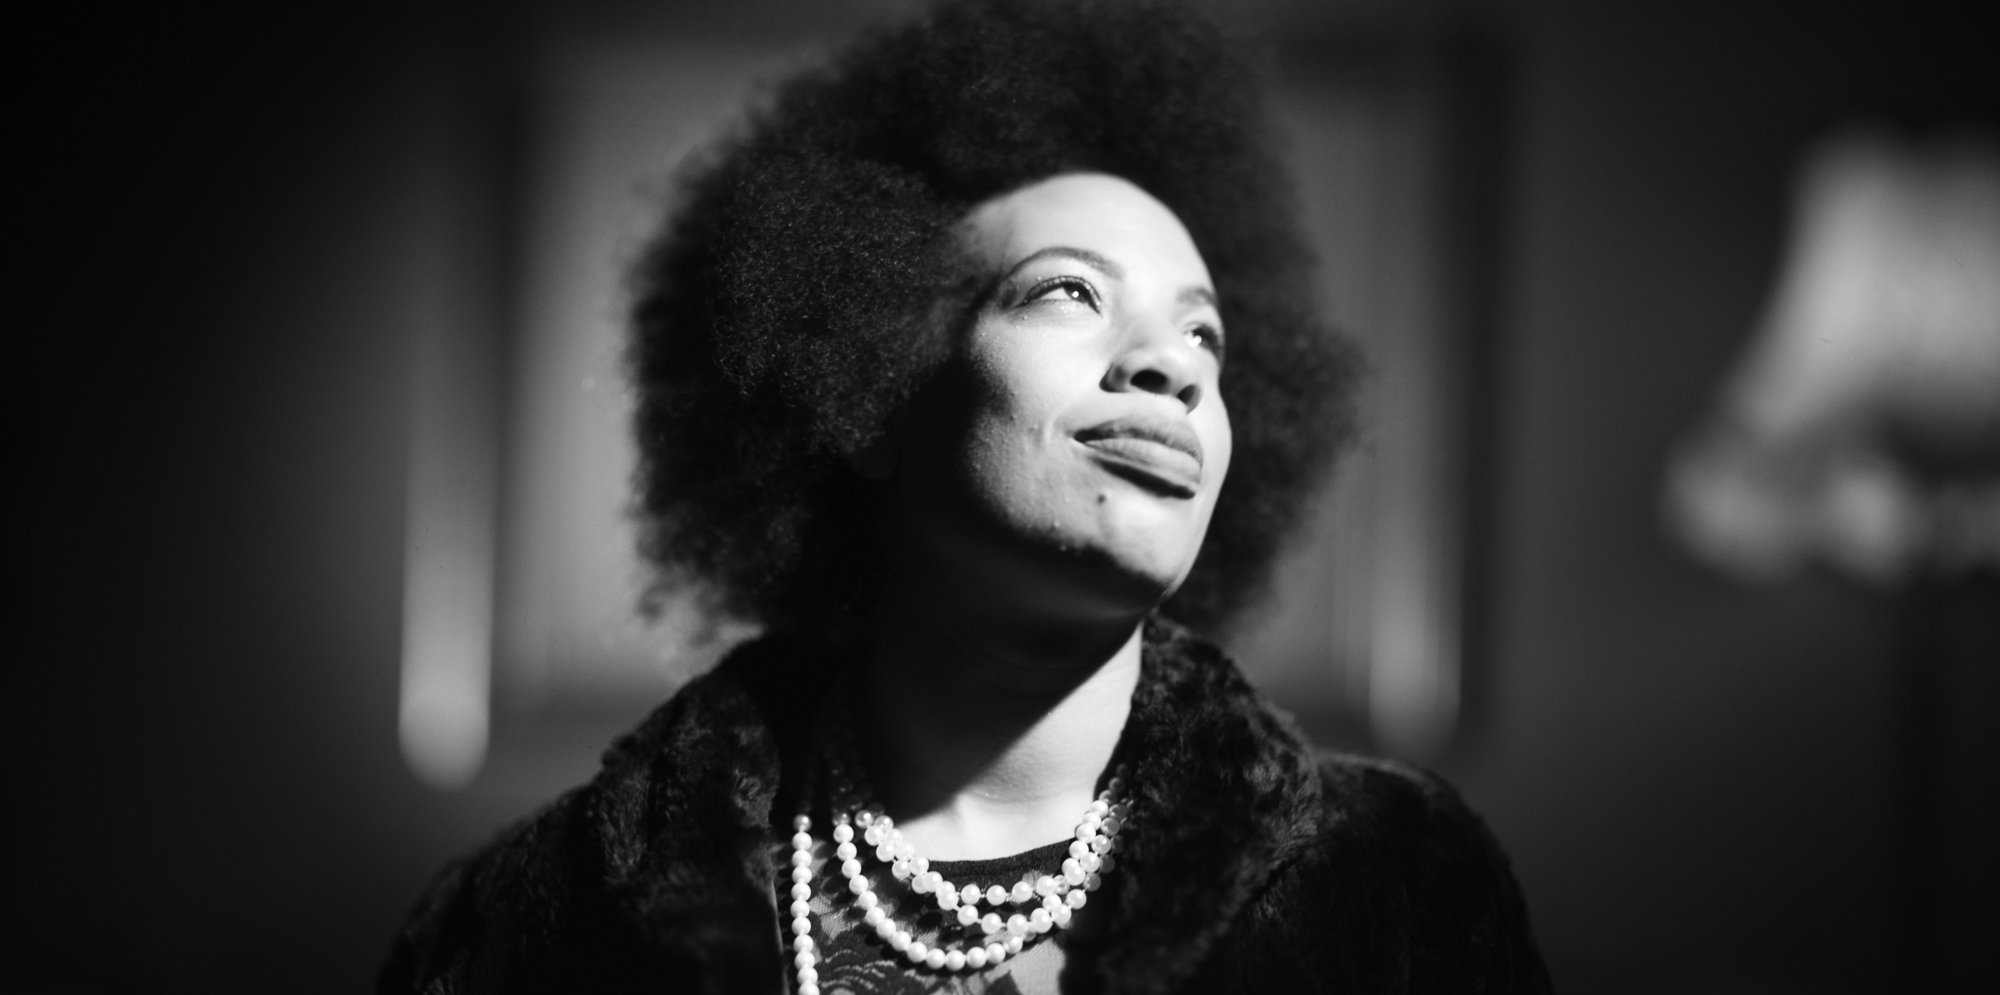 A black woman with natural hair is in a black and white photo. She is looking up and to the side and looks peaceful.